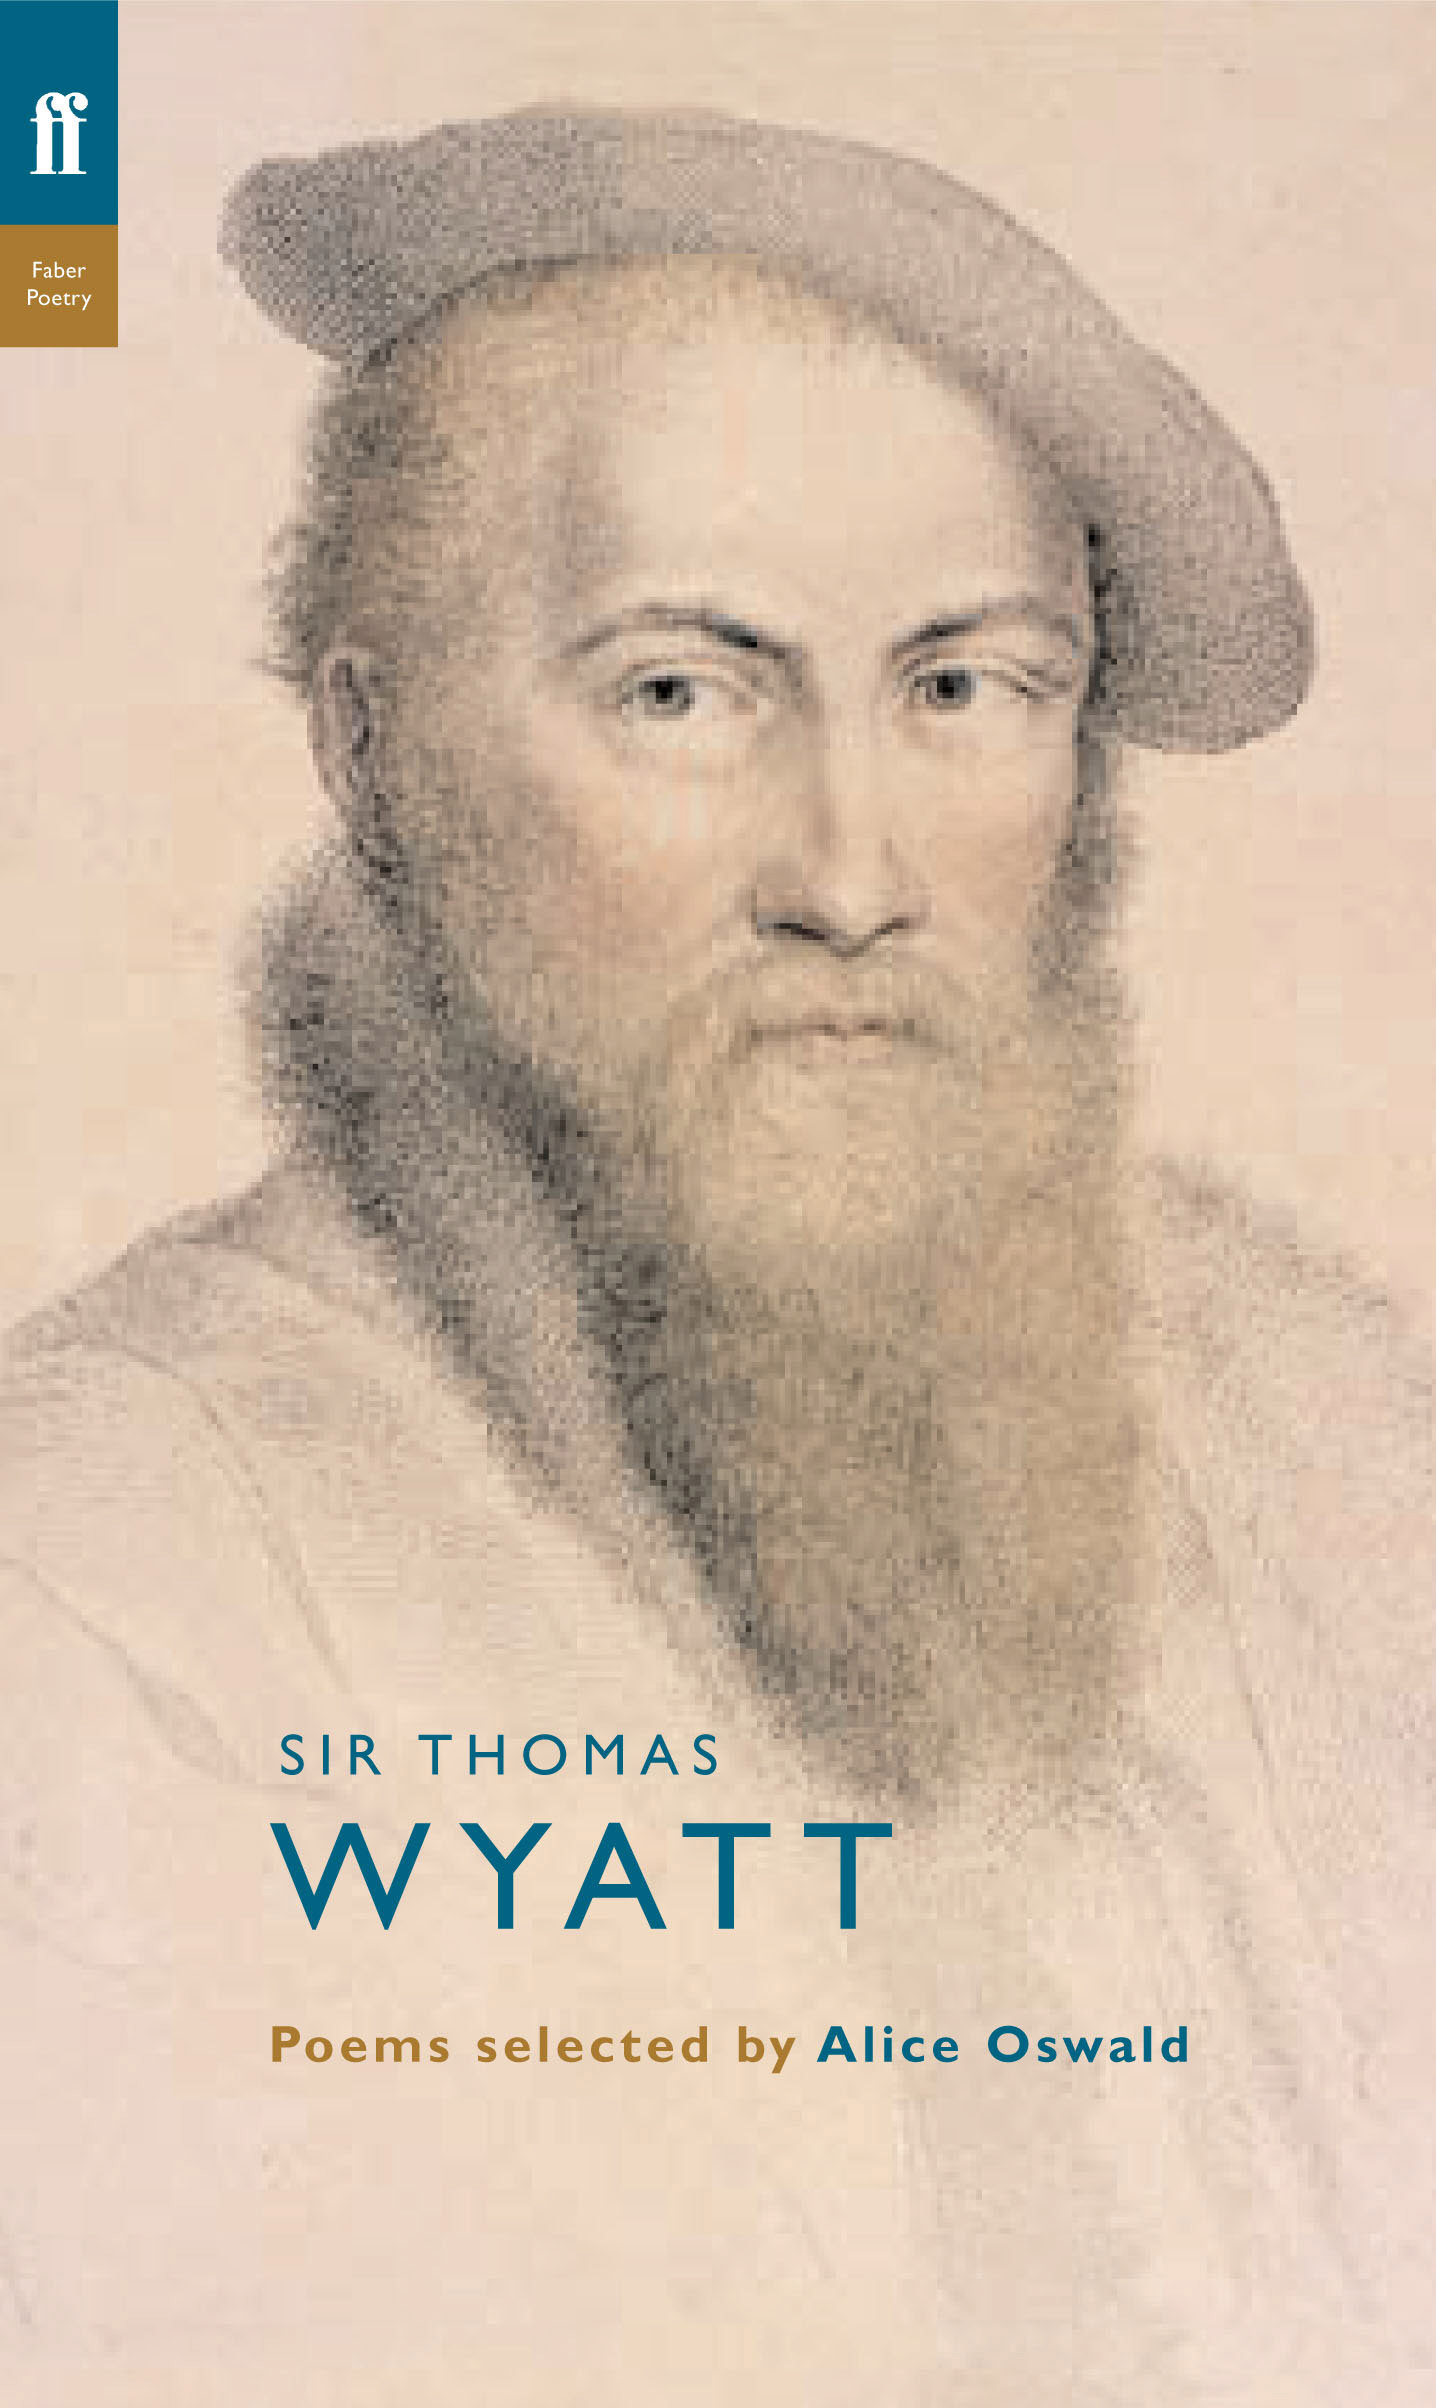 thomas wyatt i find no peace Thomas wyatt thomas wyatt short biography born at allington castle in kent and educated at cambridge, wyatt spent most of his life in the service of henry eighth although he fell out of favour from time to time.